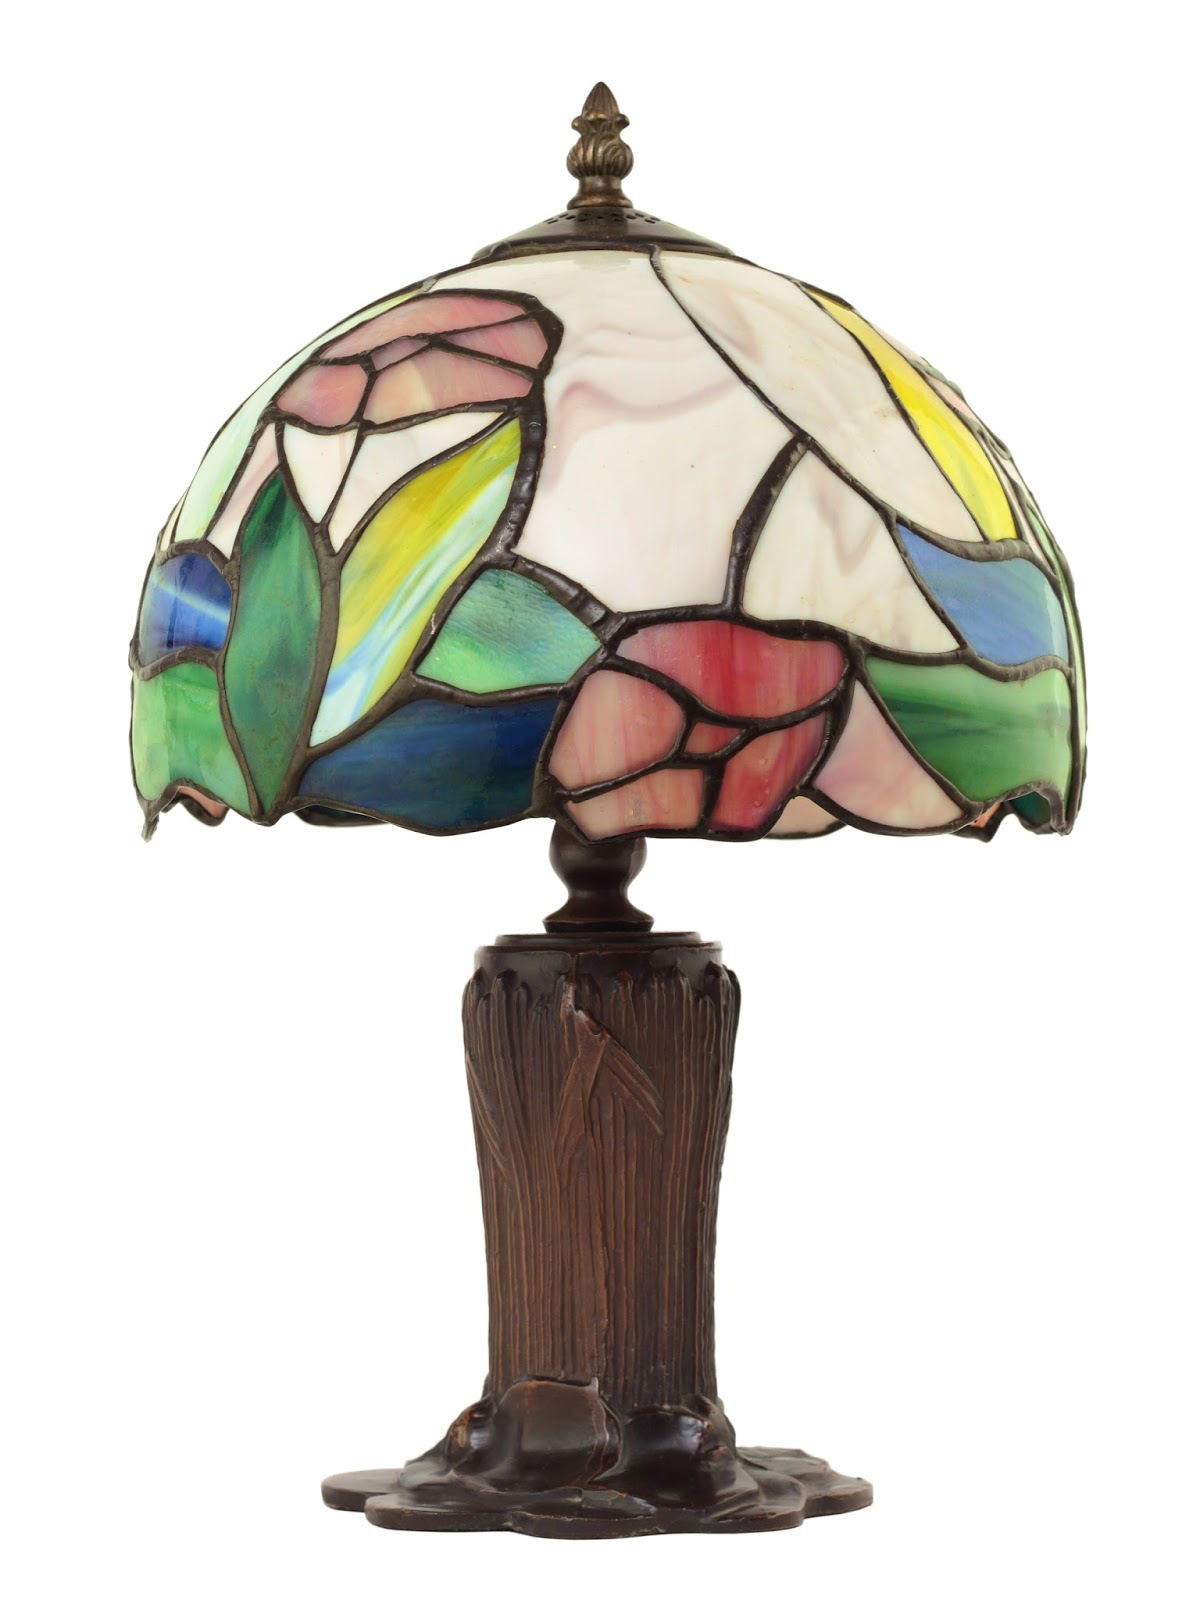 A Genuine #Tiffany Lamp In Silence Of The Lamps By Karen Rose Smith